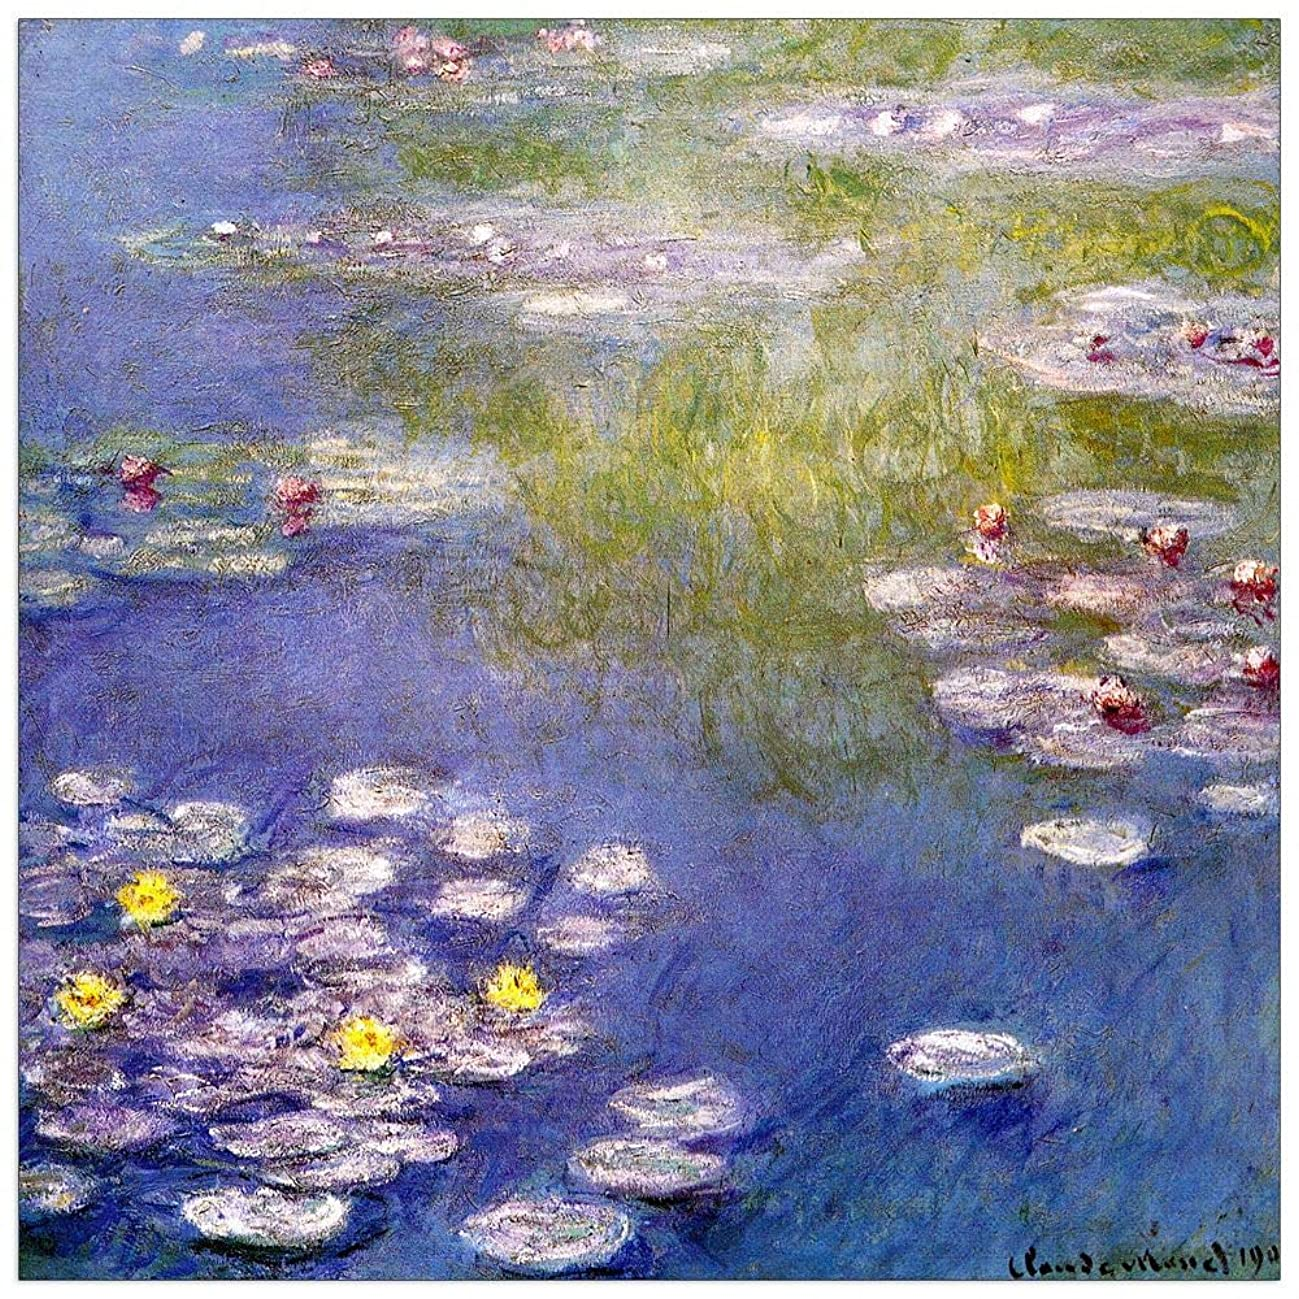 ArtPlaza TW91842 Monet Claude - Nympheas at Giverny Decorative Panel 31.5x31.5 Inch Multicolored